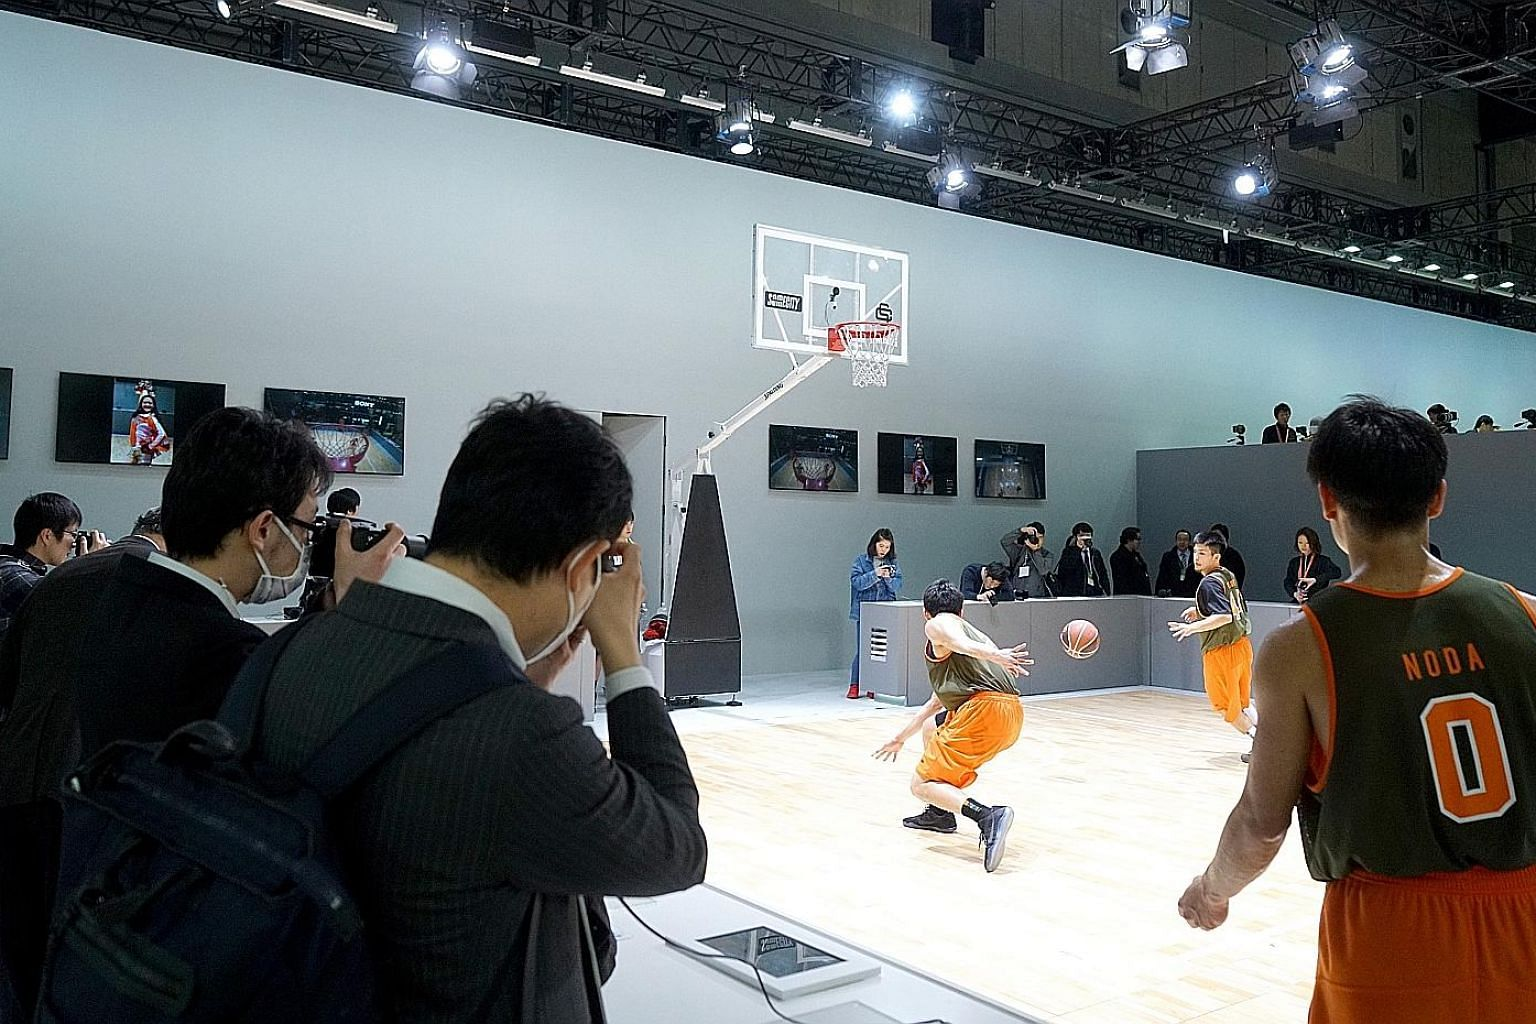 Visitors trying out cameras by taking photos of people playing basketball at the Sony booth of the CP+ Camera and Photo Imaging Show in Yokohama last week.